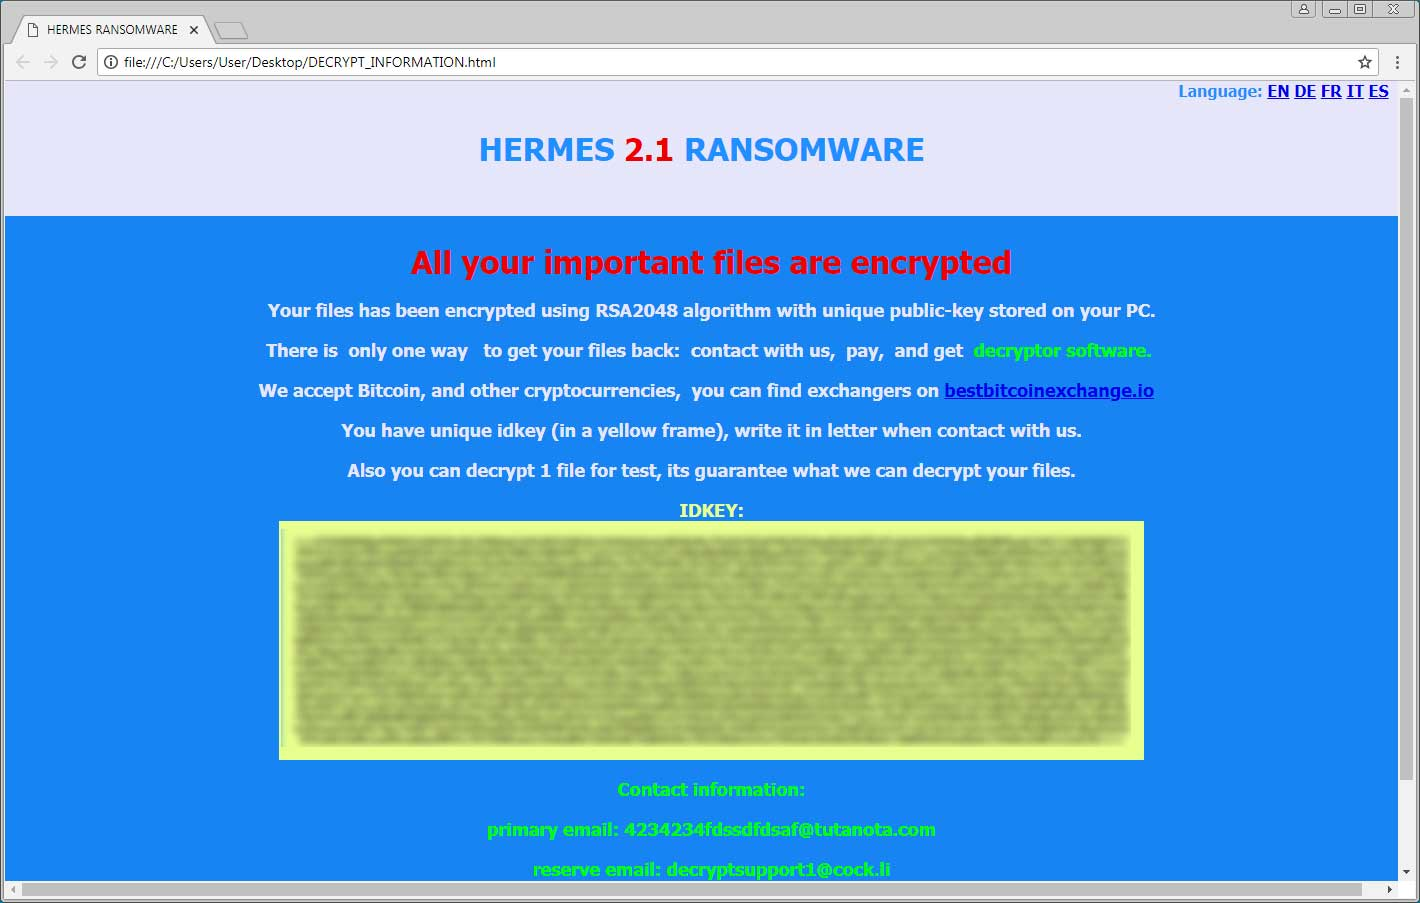 The Week in Ransomware - August 24th 2018 - Hermes, Fox, and Ryuk